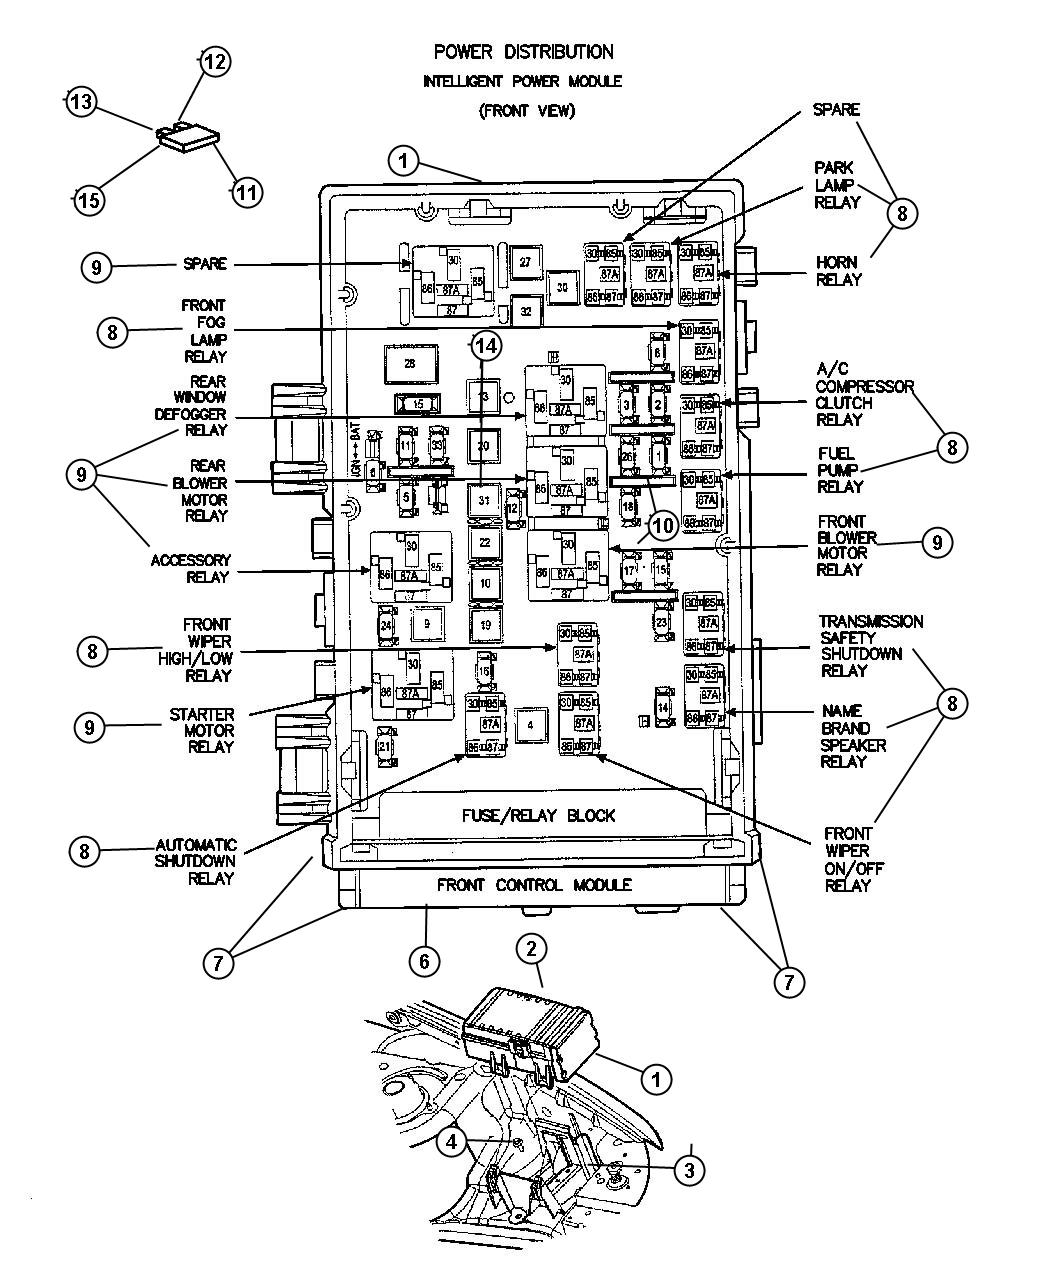 2001 chrysler voyager radio fuse 2001 chrysler voyager fuse panel diagram